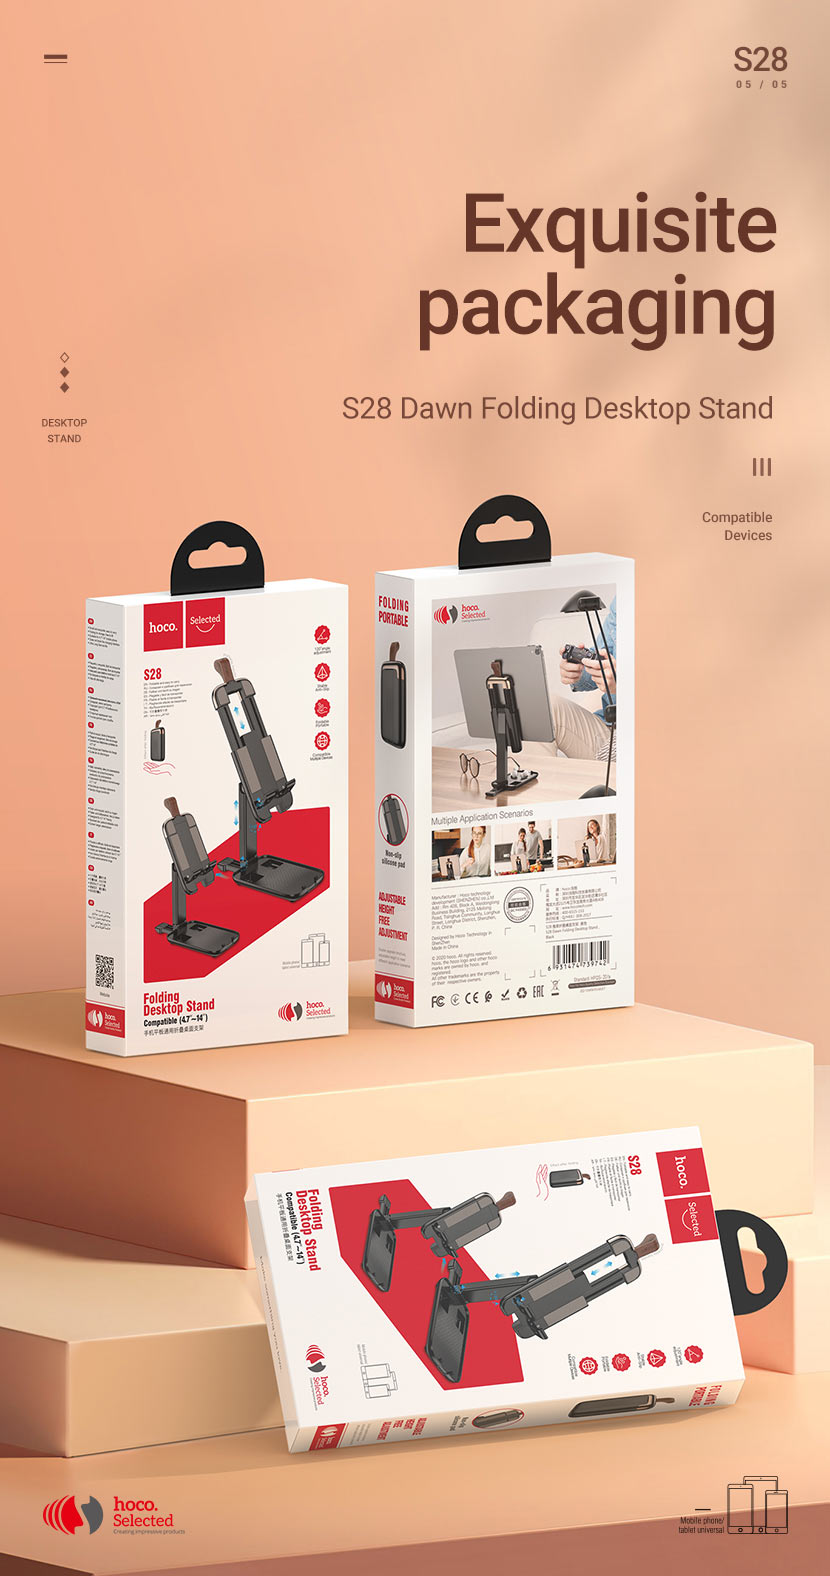 hoco selected news s28 dawn folding desktop stand package en